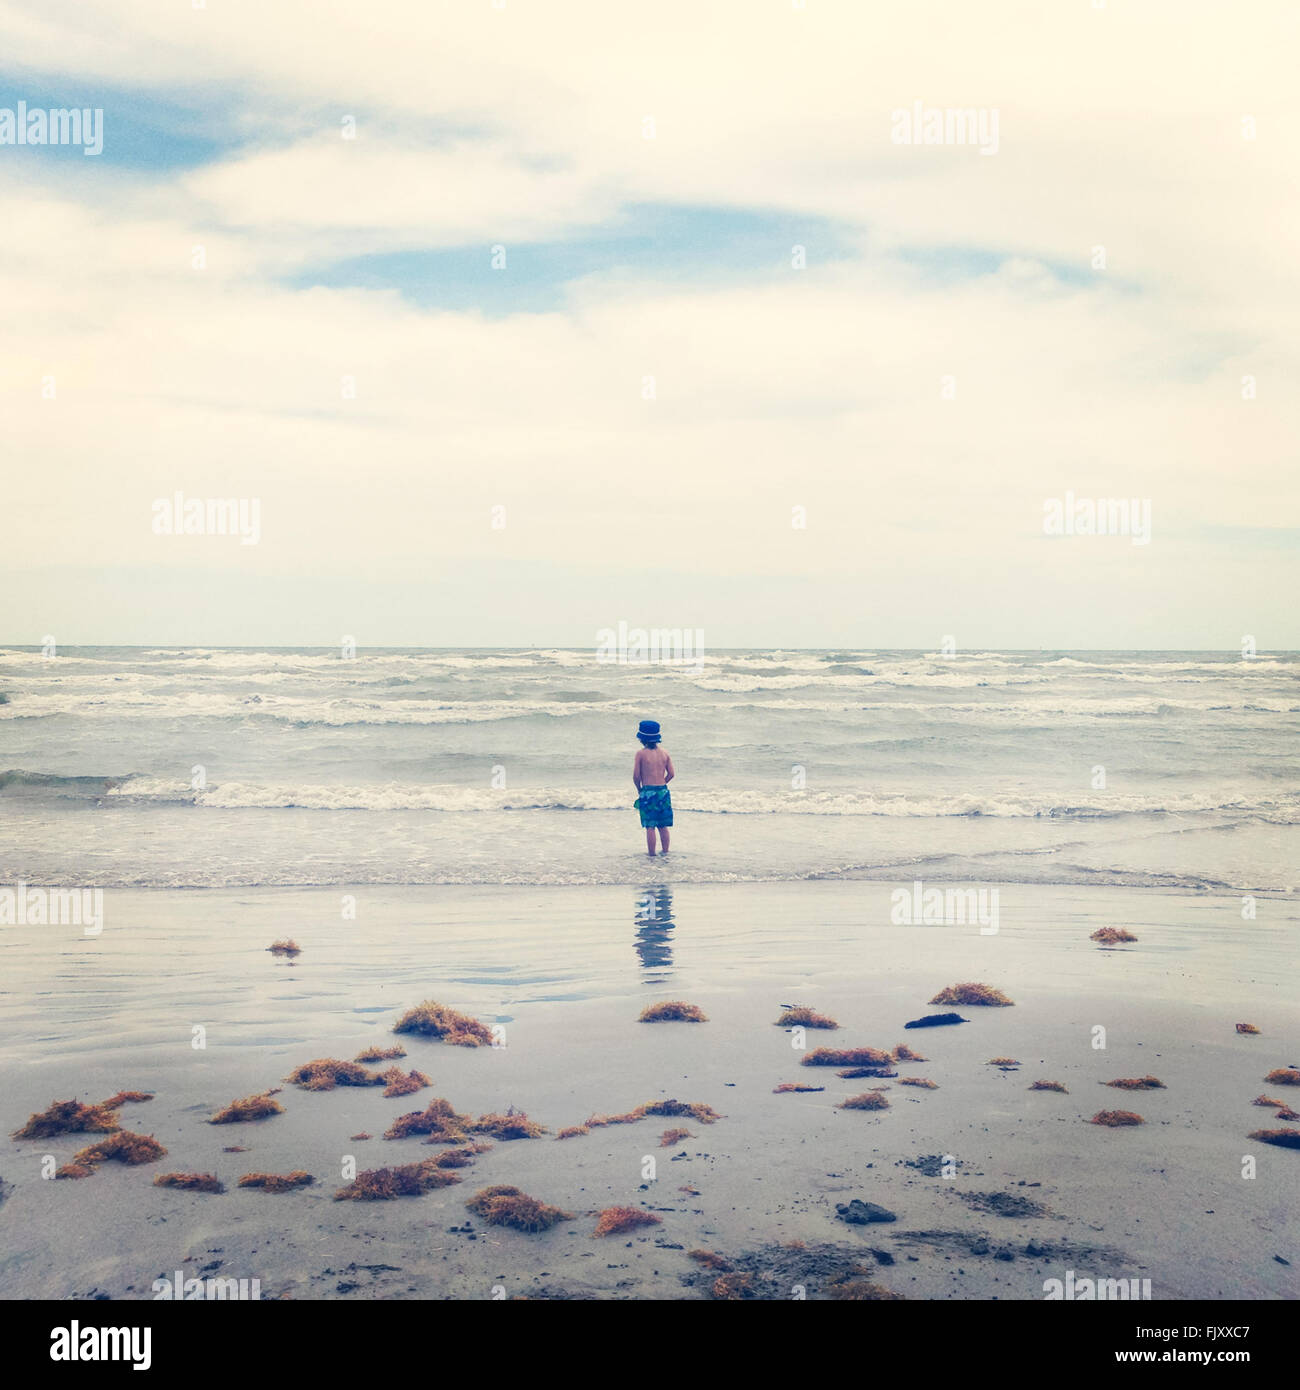 Rear View Of Shirtless Boy Standing At Sea Shore Against Cloudy Sky - Stock Image